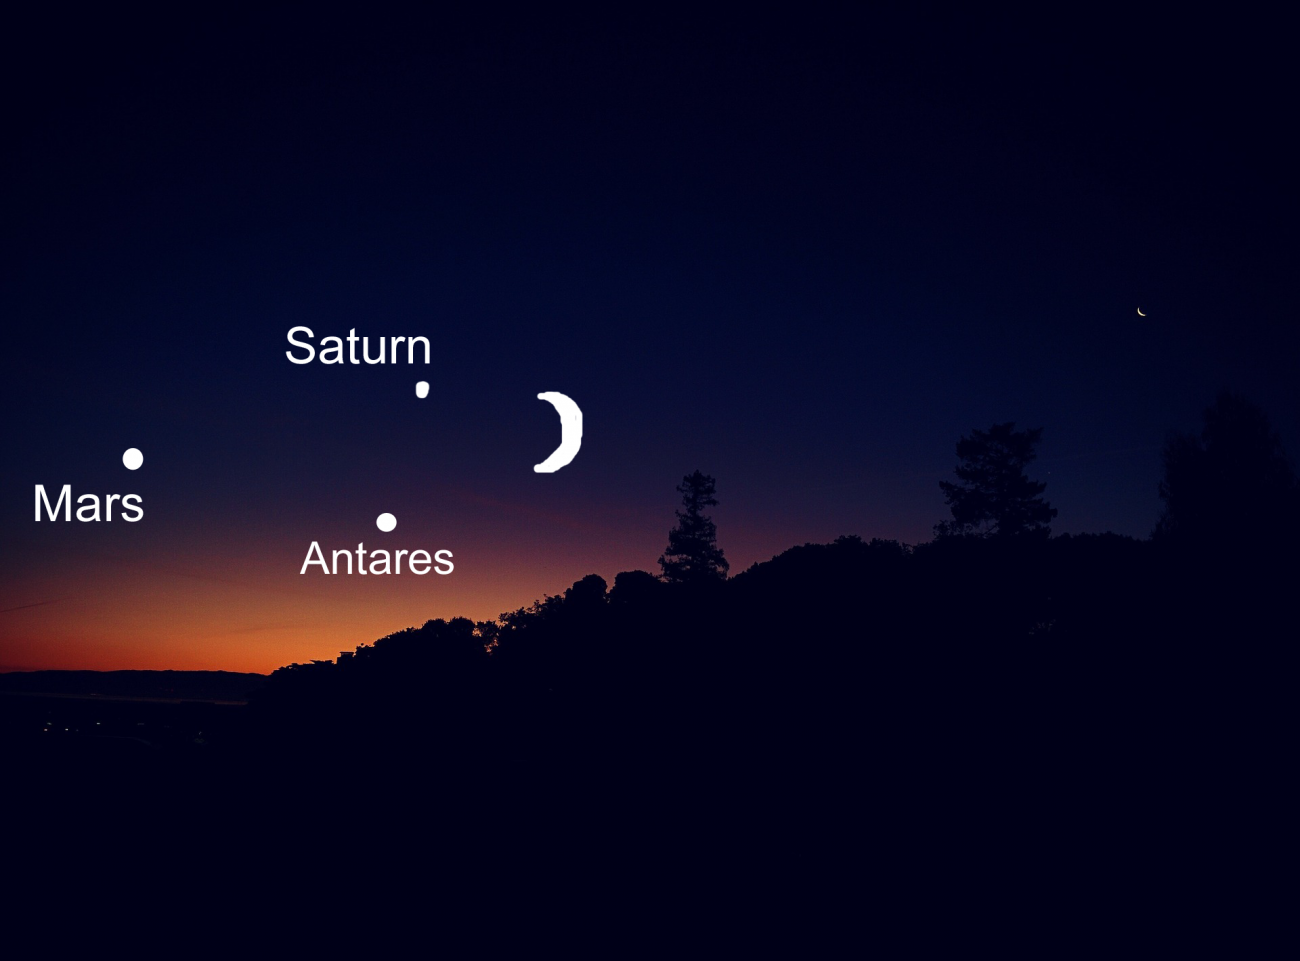 Mars Saturn Antares Triangle